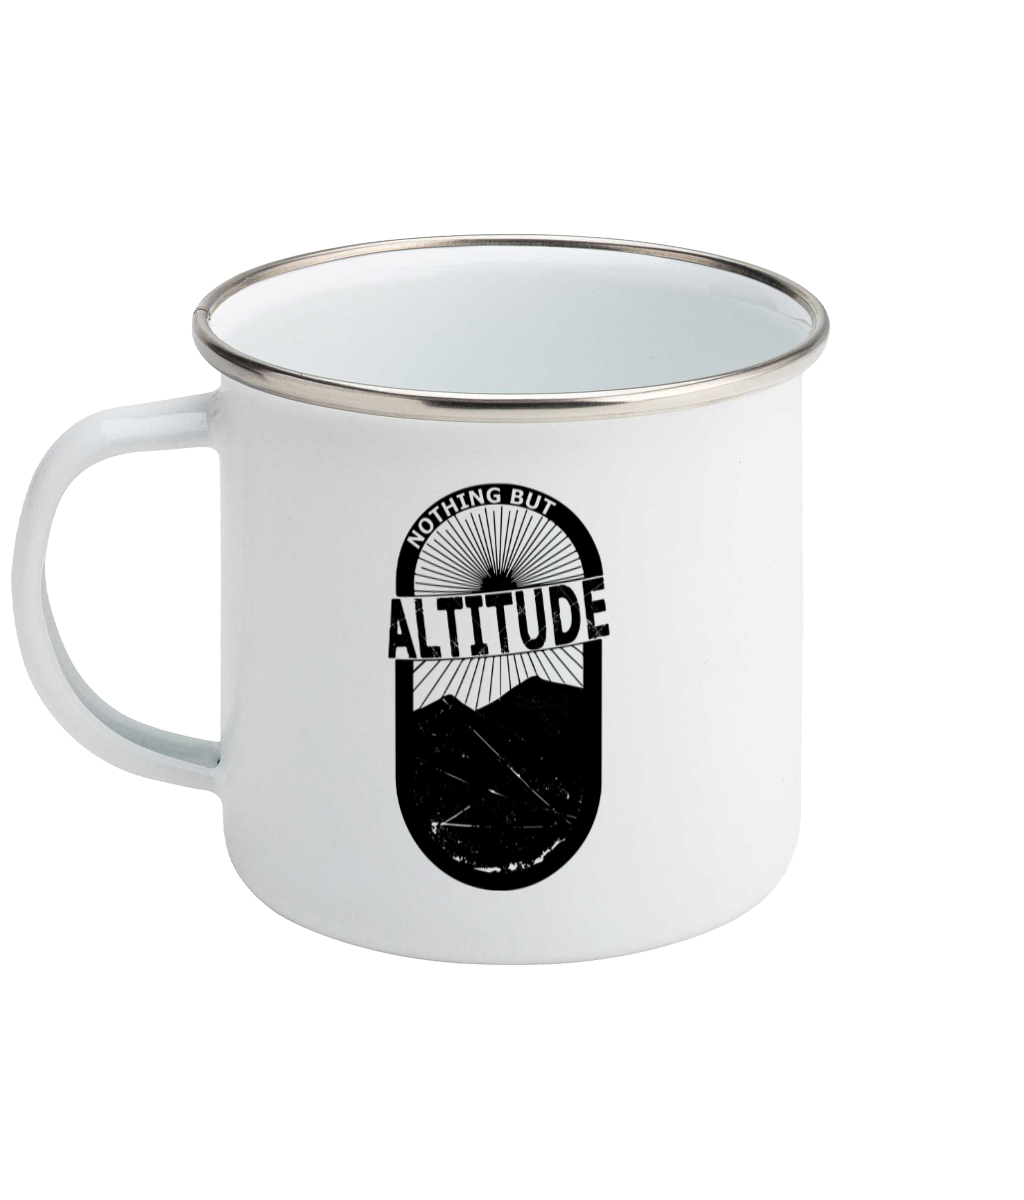 Nothing But Altitude - Enamel Mug